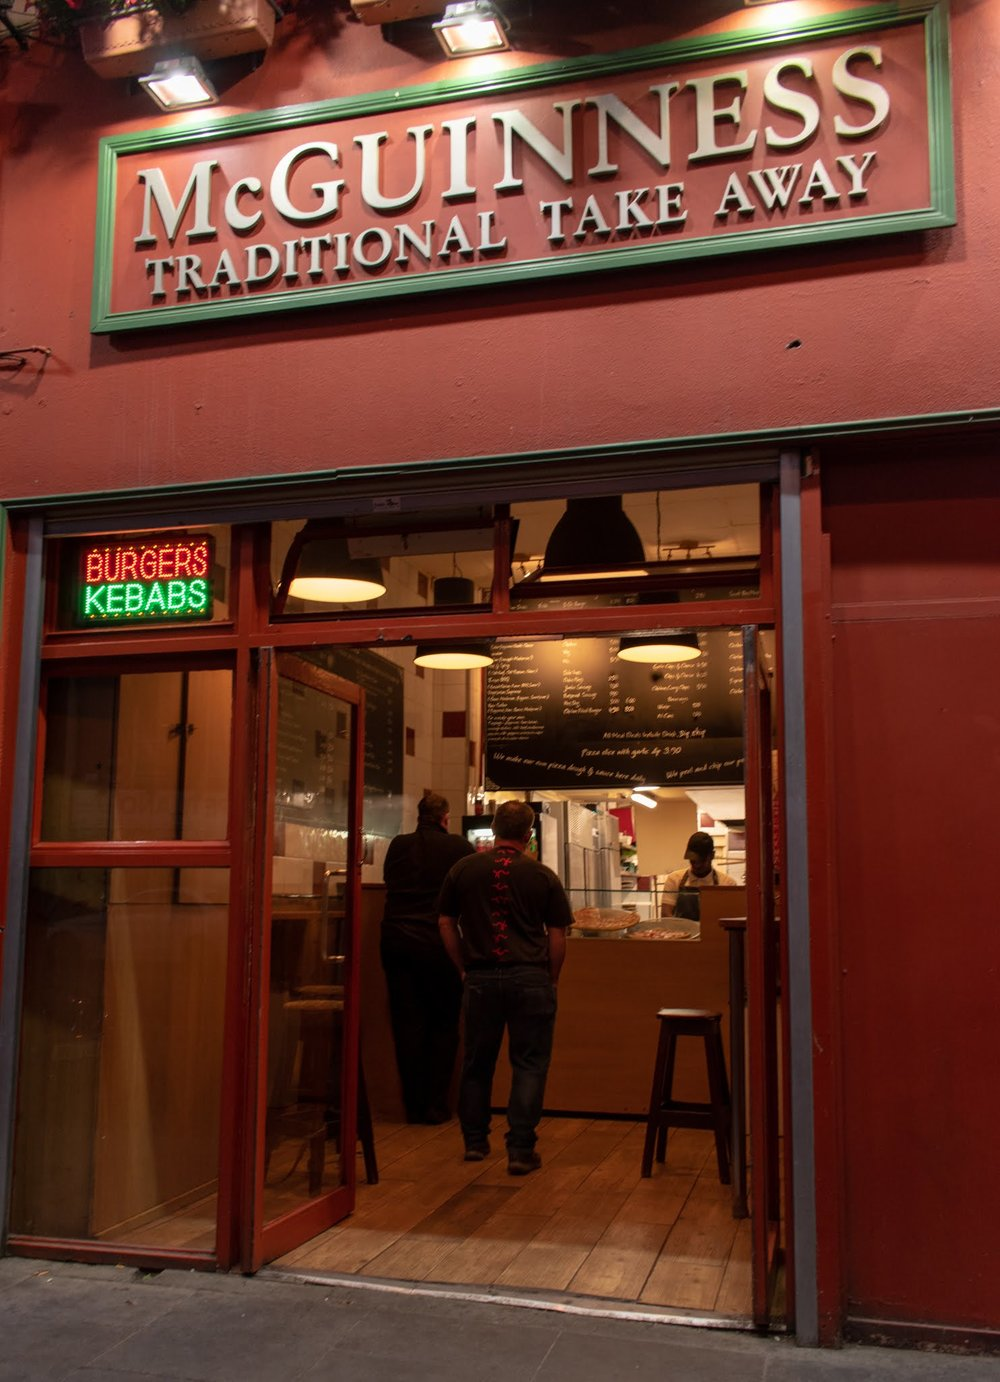 uprooted-traveler-dublin-ireland-vegan-guide-mcguinness-traditional-take-away.jpg